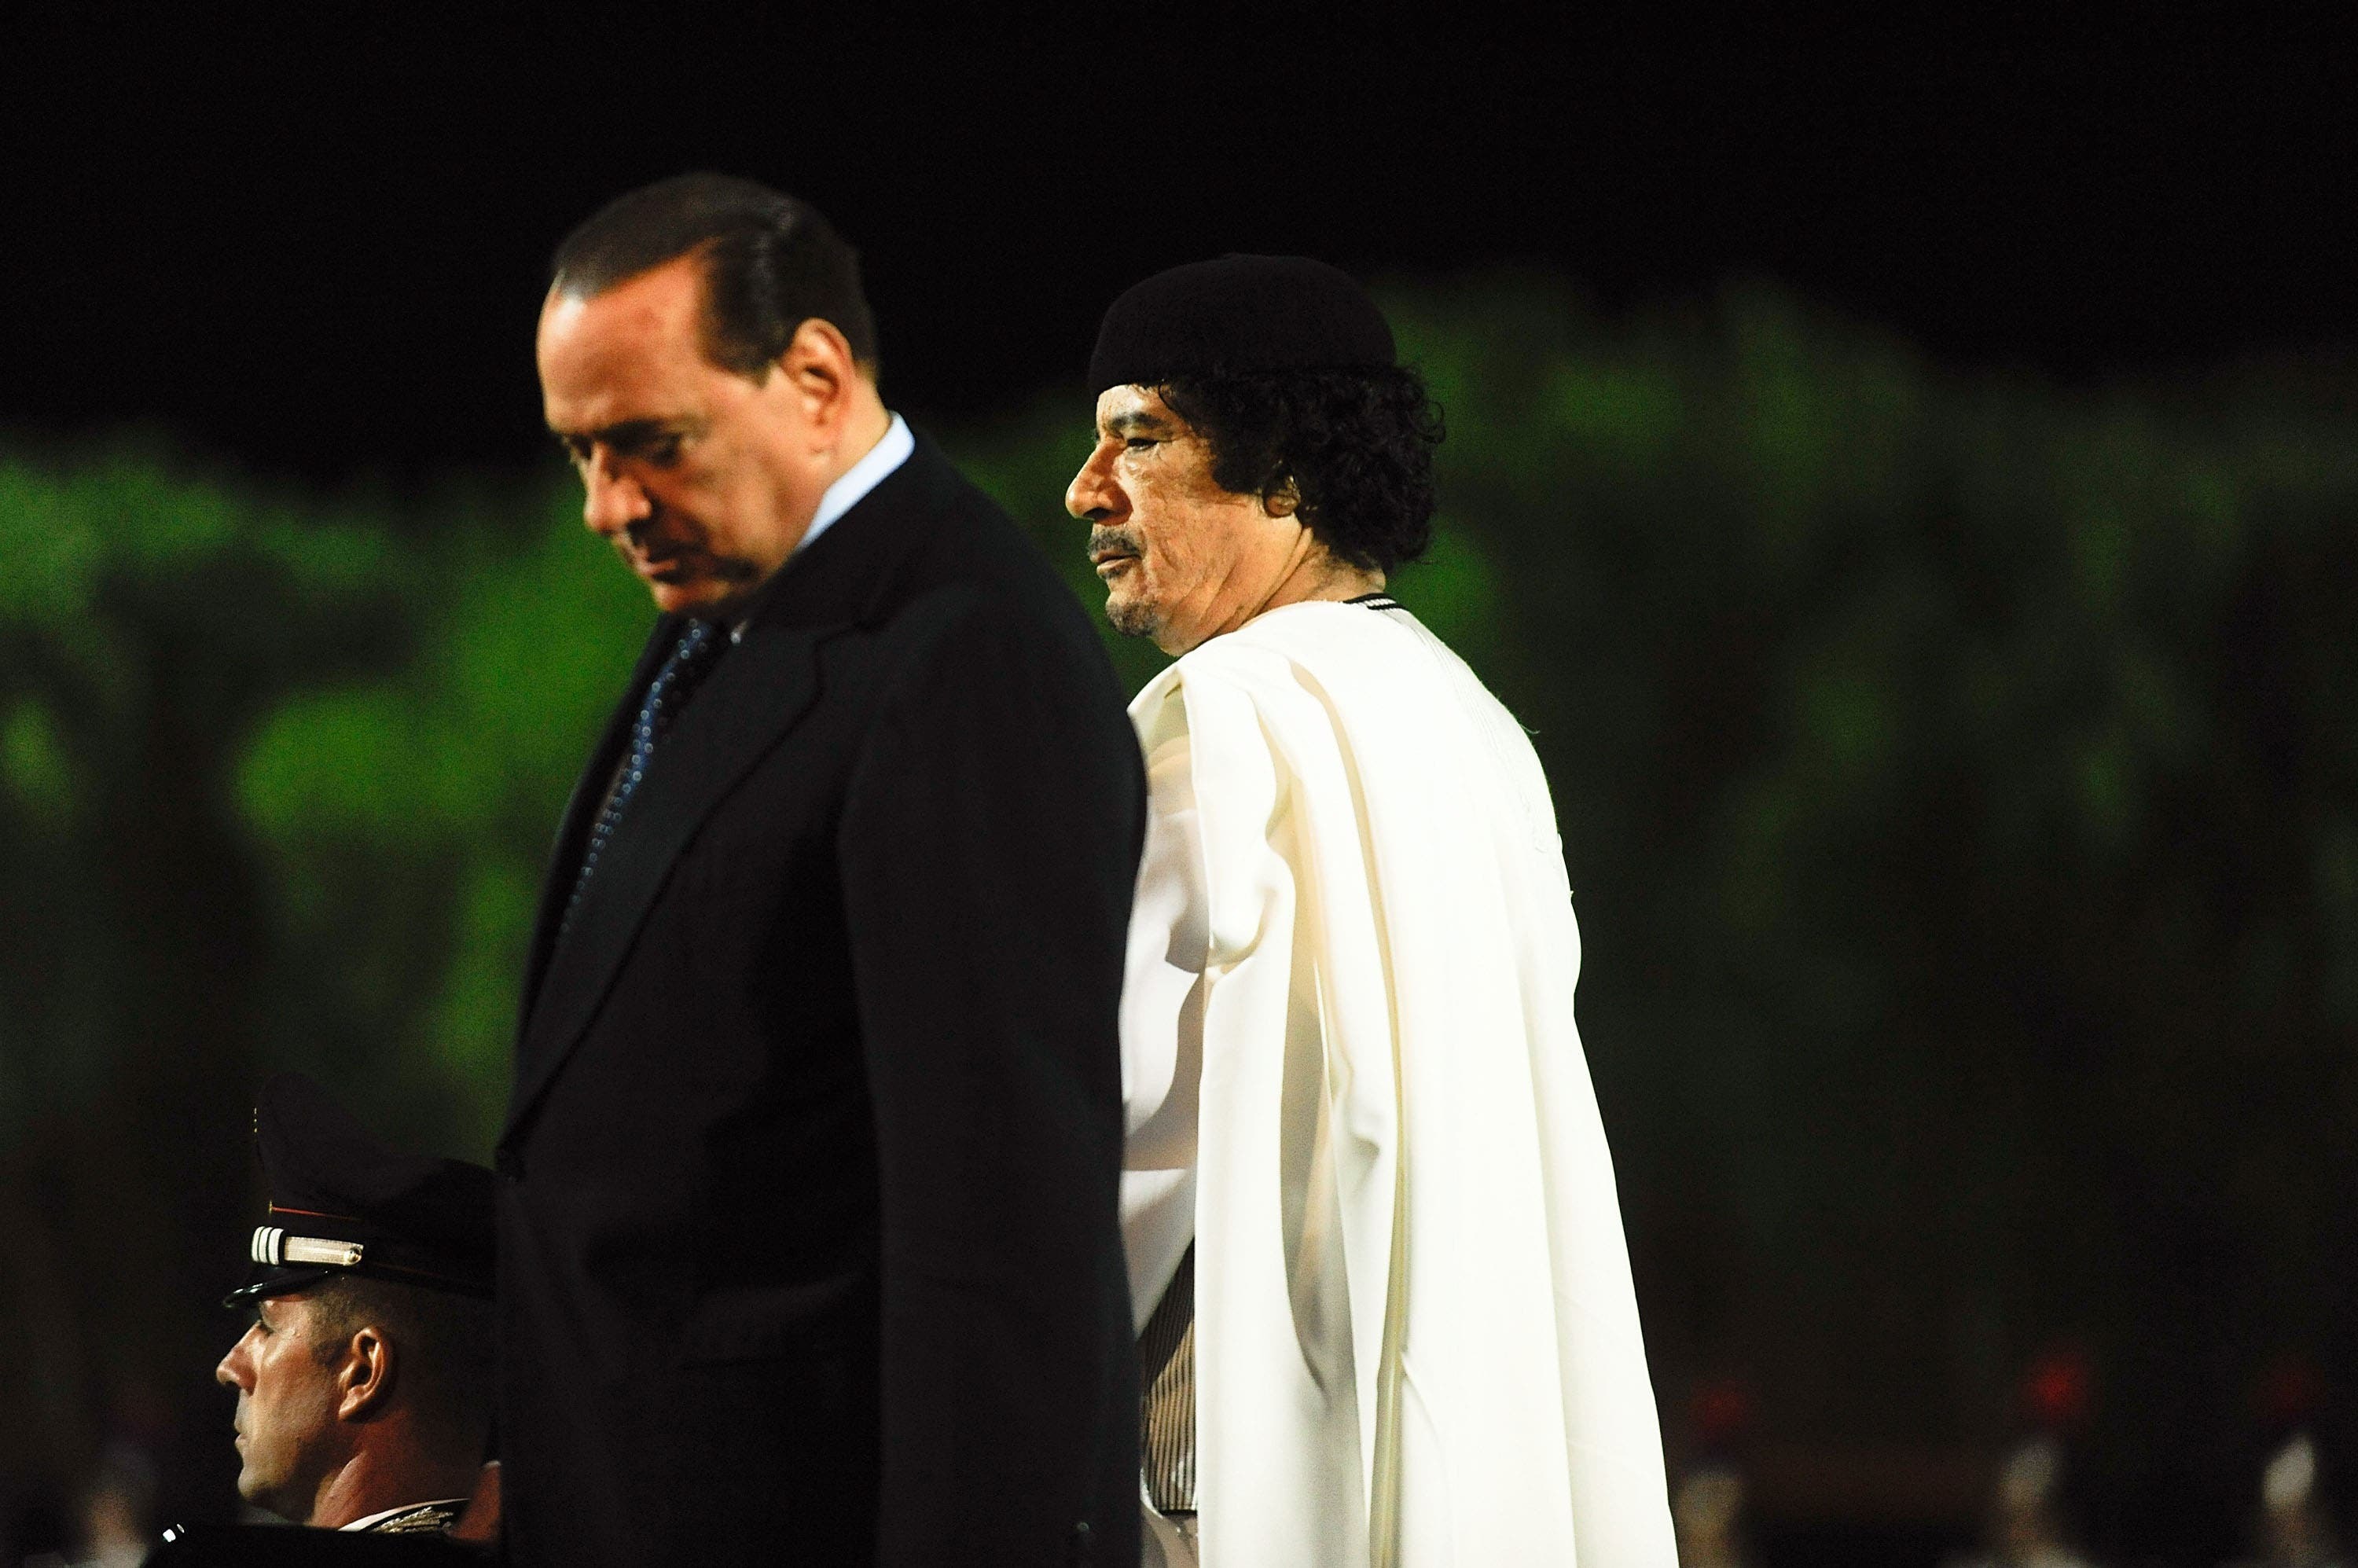 Sex 6 times a week is what the doctor has ordered for Silvio Berlusconi, a leader infamous for his chauvinistic character as head of Italy who has been less than popular amongst Italian women recently.